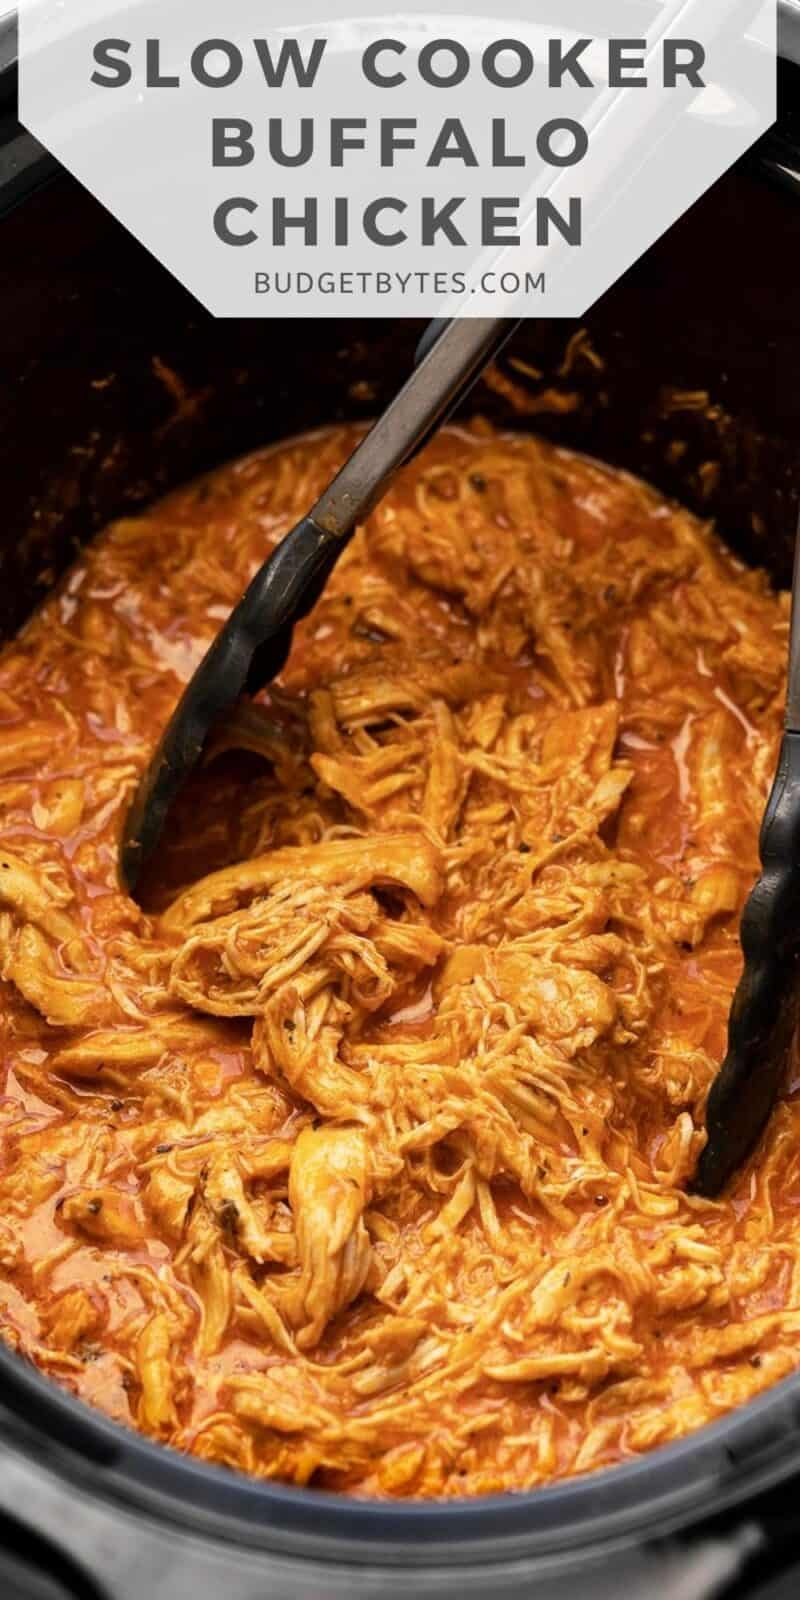 close up of slow cooker buffalo chicken in the crock pot, title text at the top